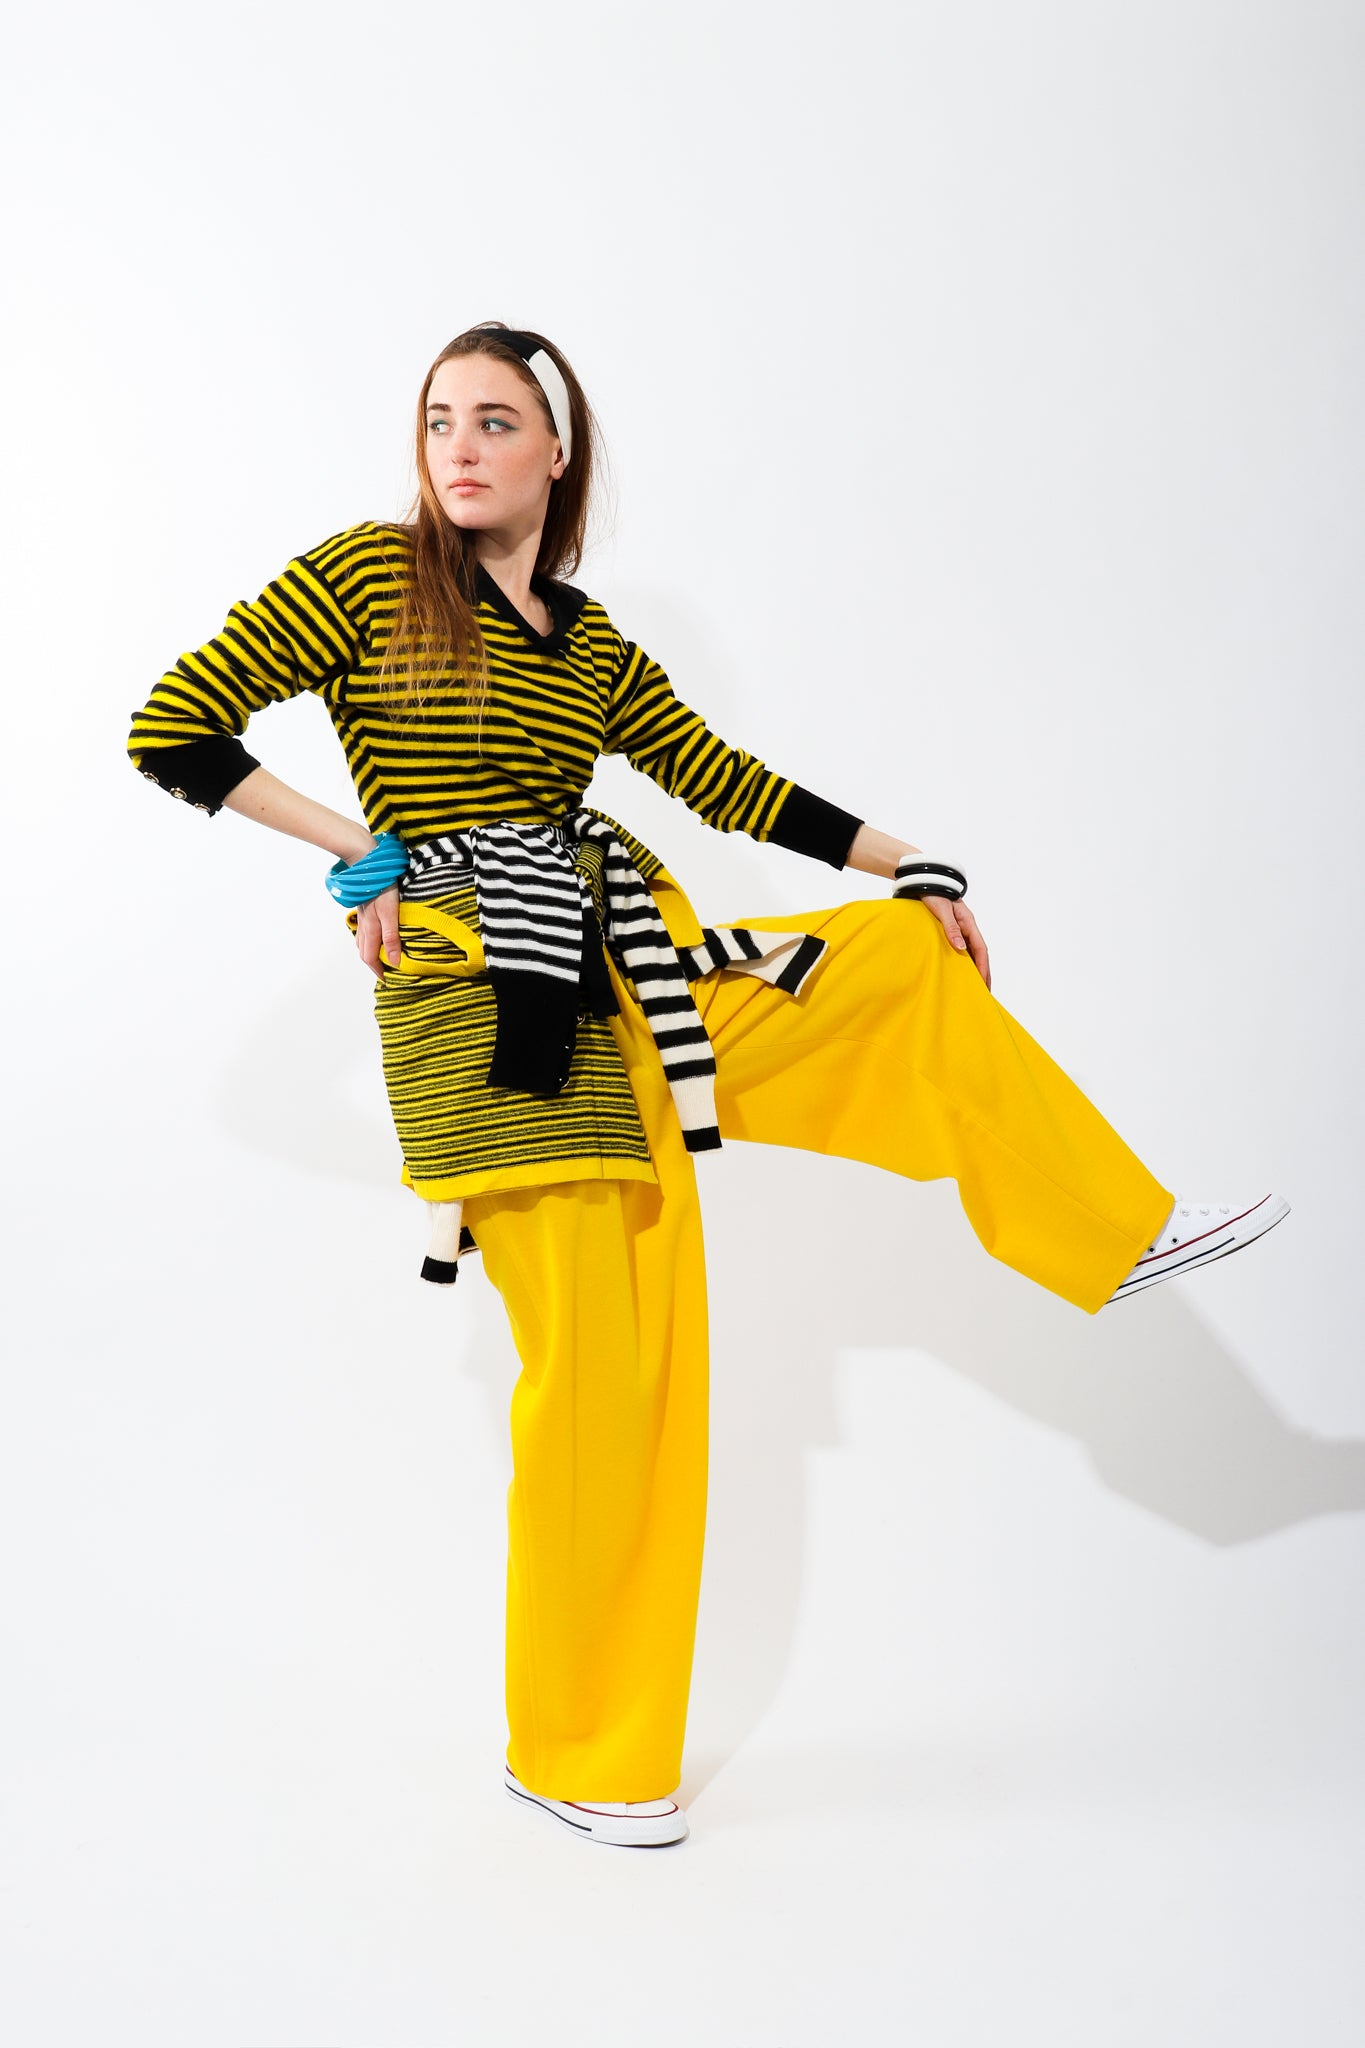 Recess Vintage Sonia Rykiel Rainbow Girl in yellow striped sweater and yellow pants on one leg